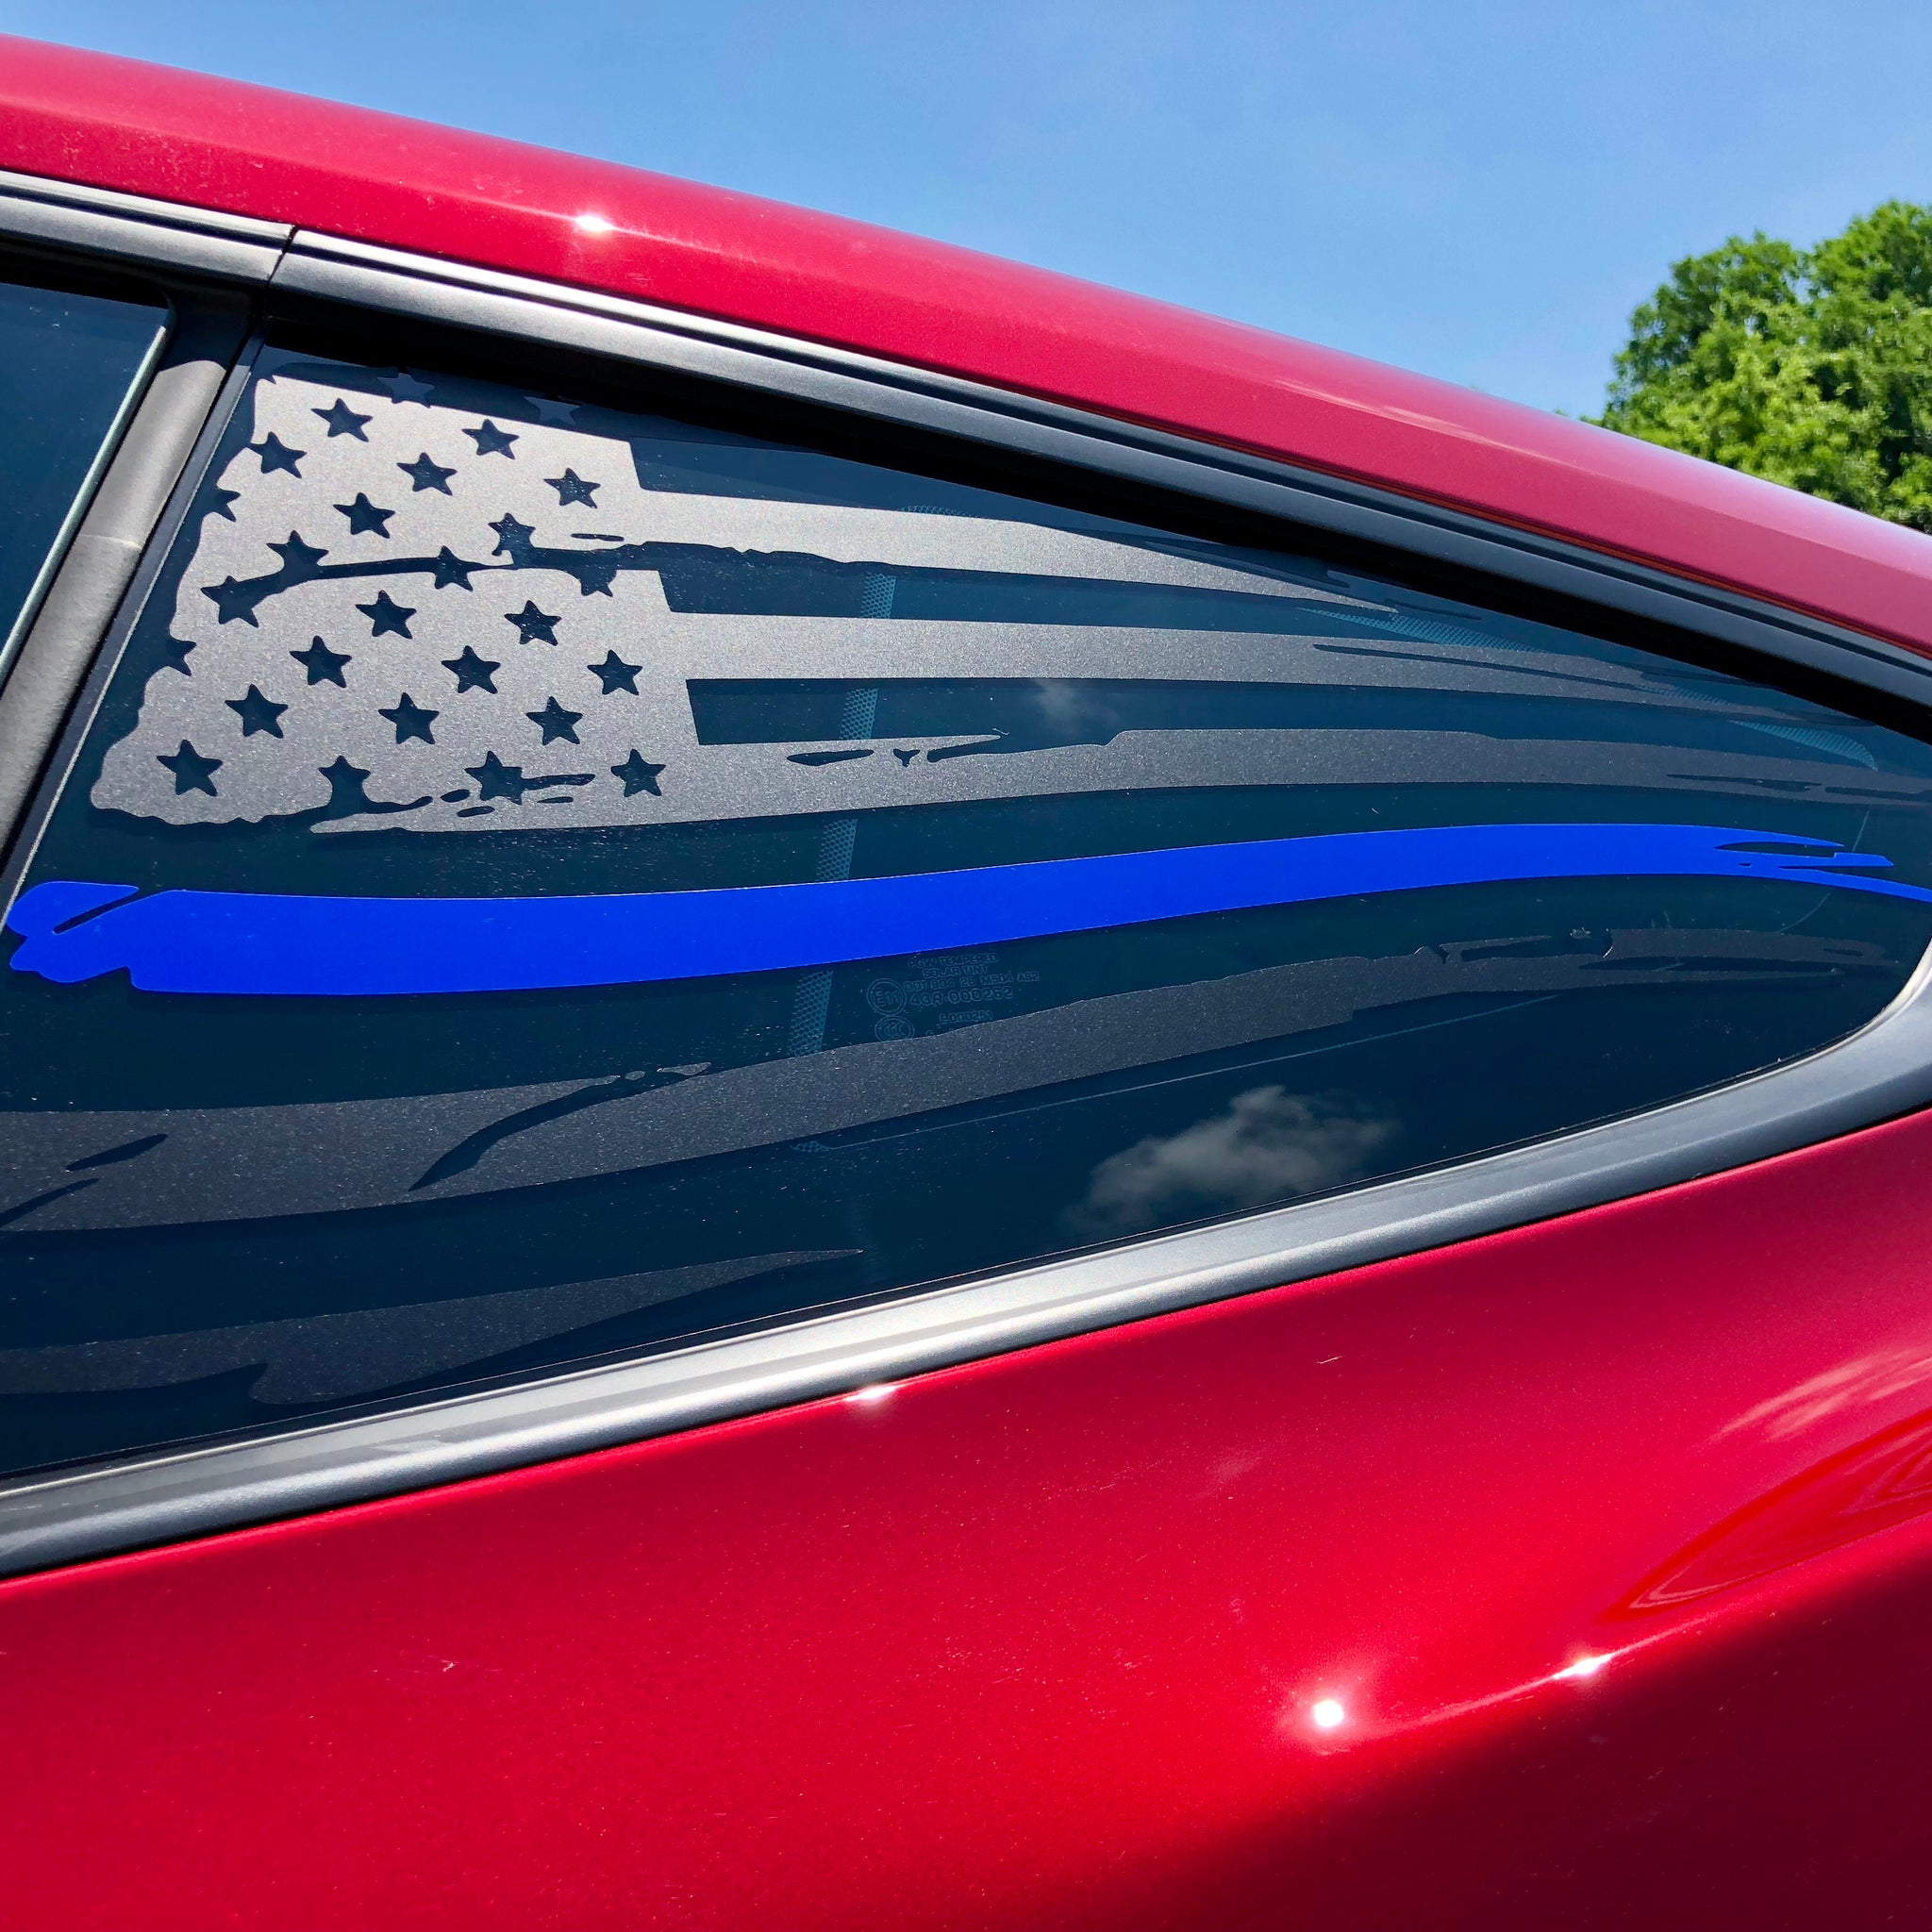 Ford Mustang 2015 and newer American flag decal sticker with thin blue line stripe s550